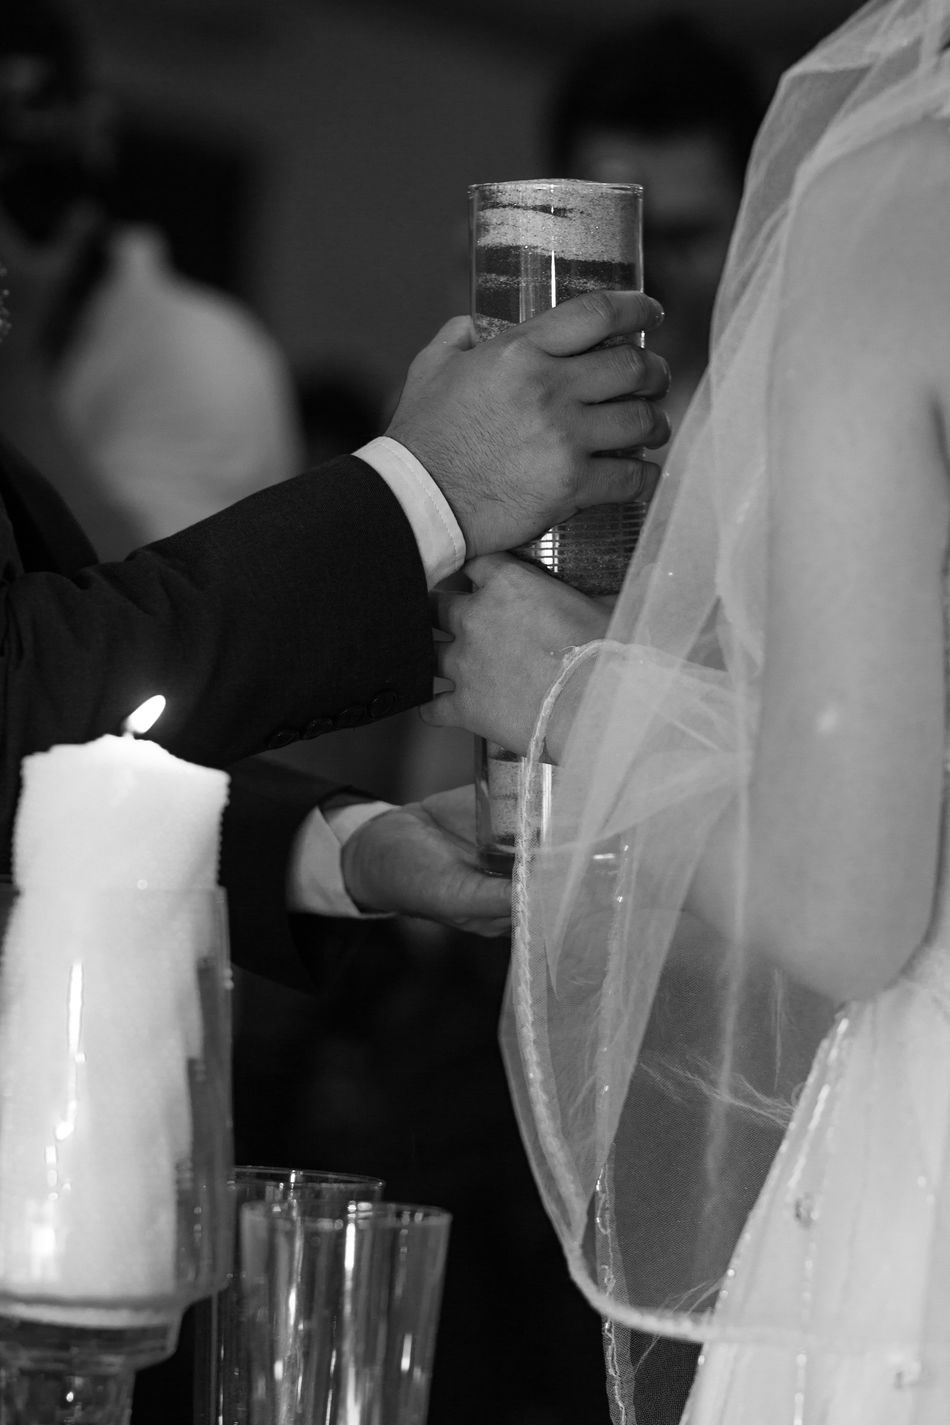 Bride Bridegroom Celebration Ceremony Close-up Day Focus On Foreground Groom Holding Human Body Part Human Hand Indoors  Men People Real People Togetherness Two People Wedding